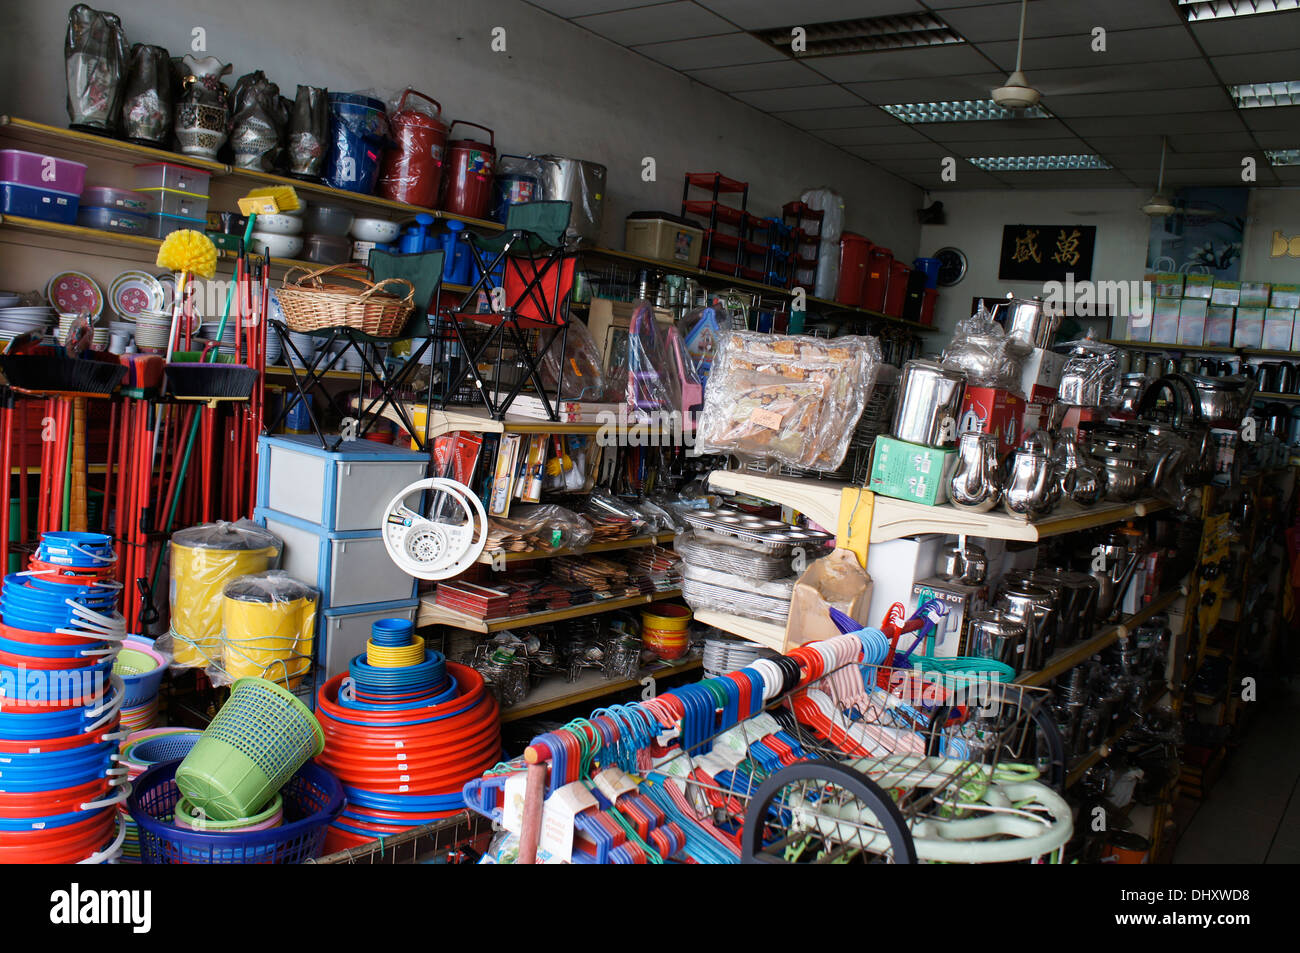 store kitchen utensils stock photos store kitchen utensils stock sundry store selling kitchen utensils in kuala lumpur malaysia stock image